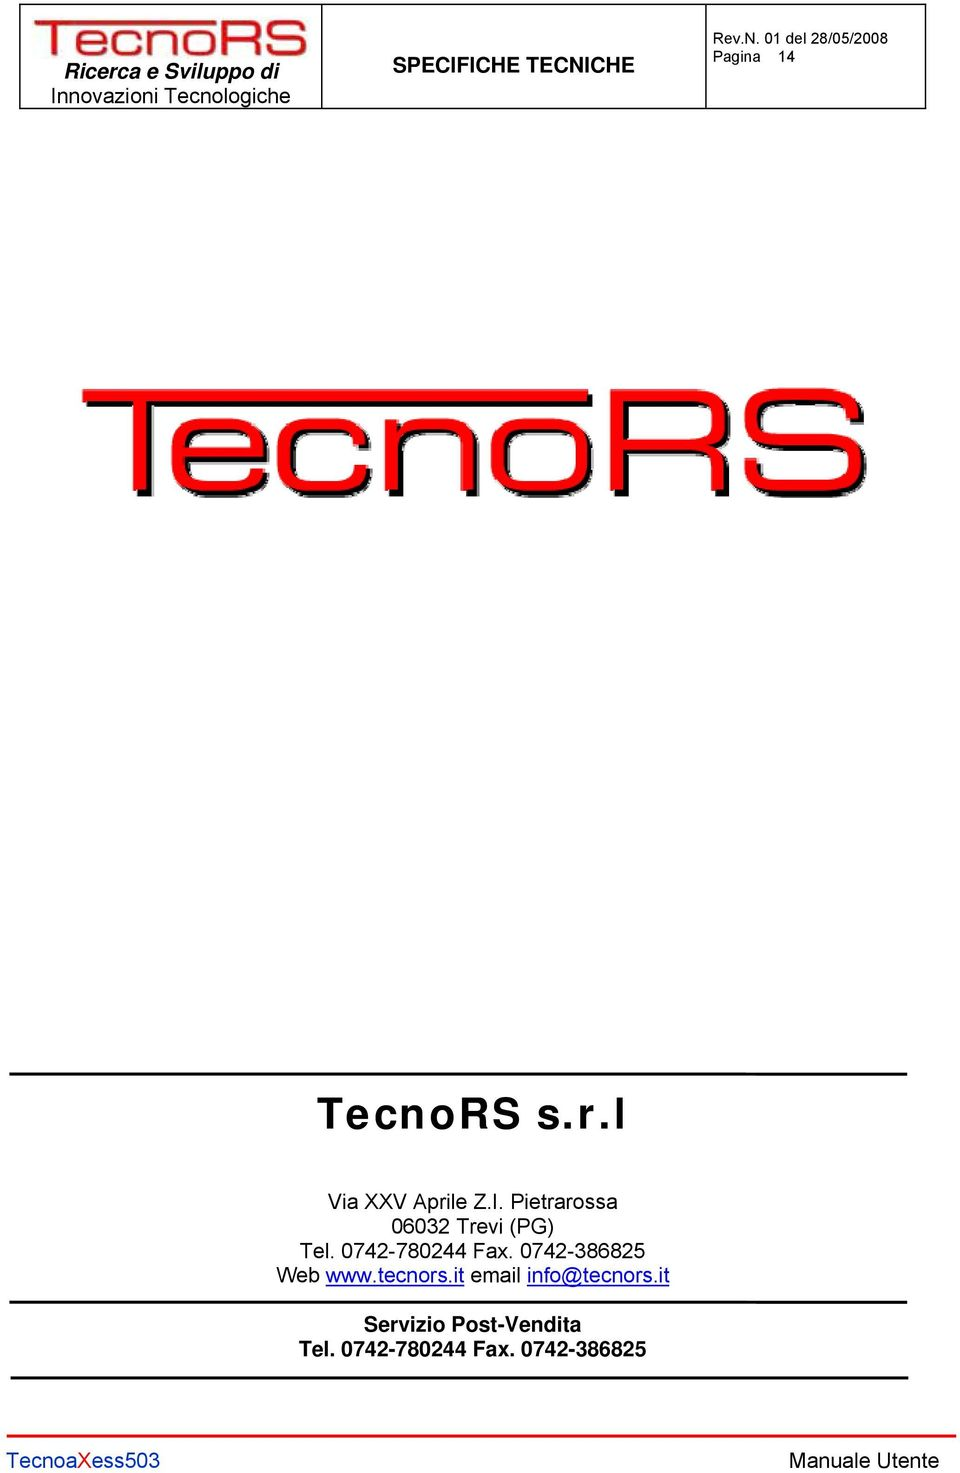 0742-386825 Web www.tecnors.it email info@tecnors.